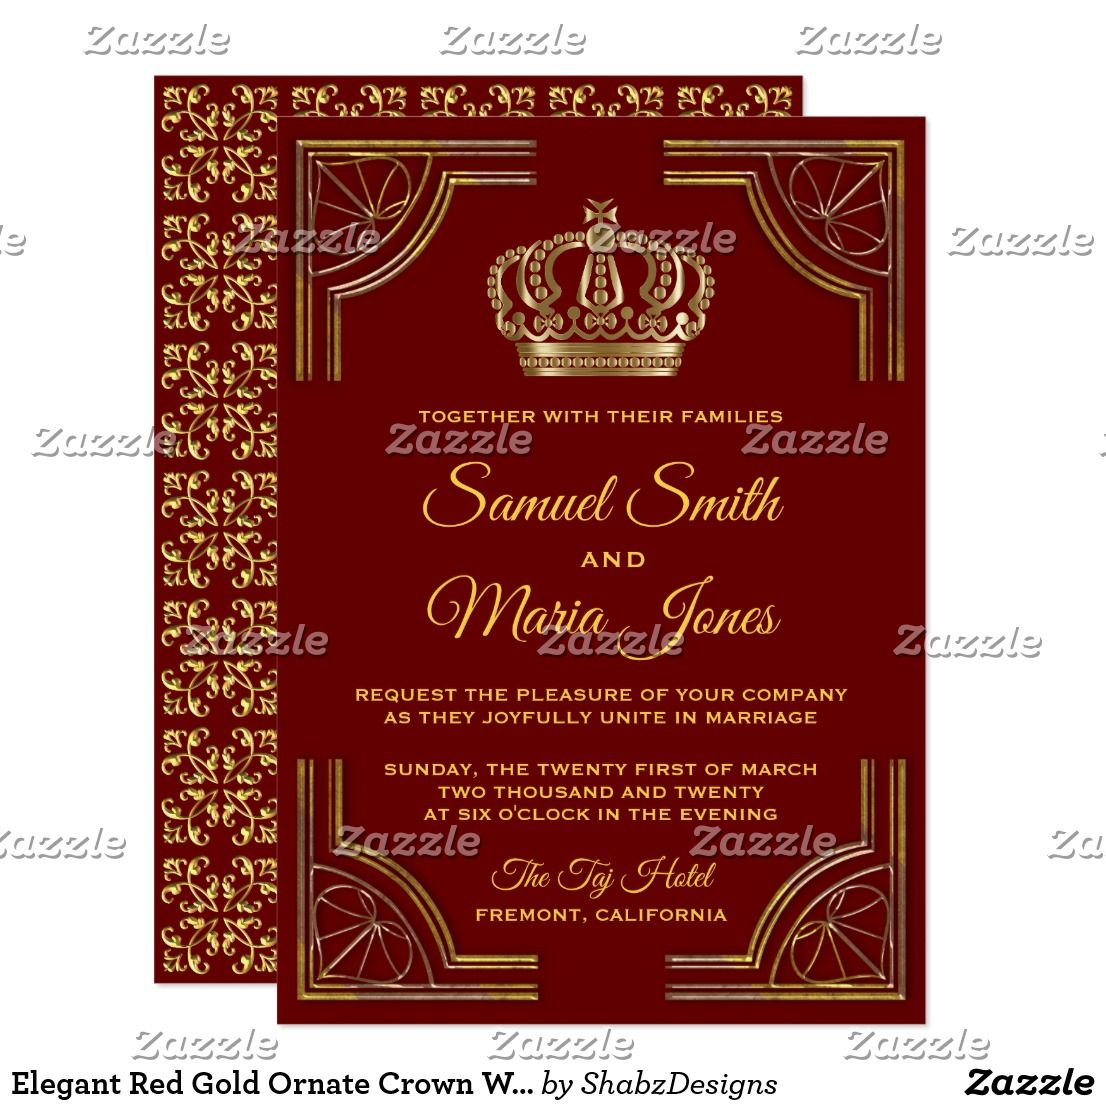 Elegant Red Gold Ornate Crown Wedding Invitation | { Wedding ...